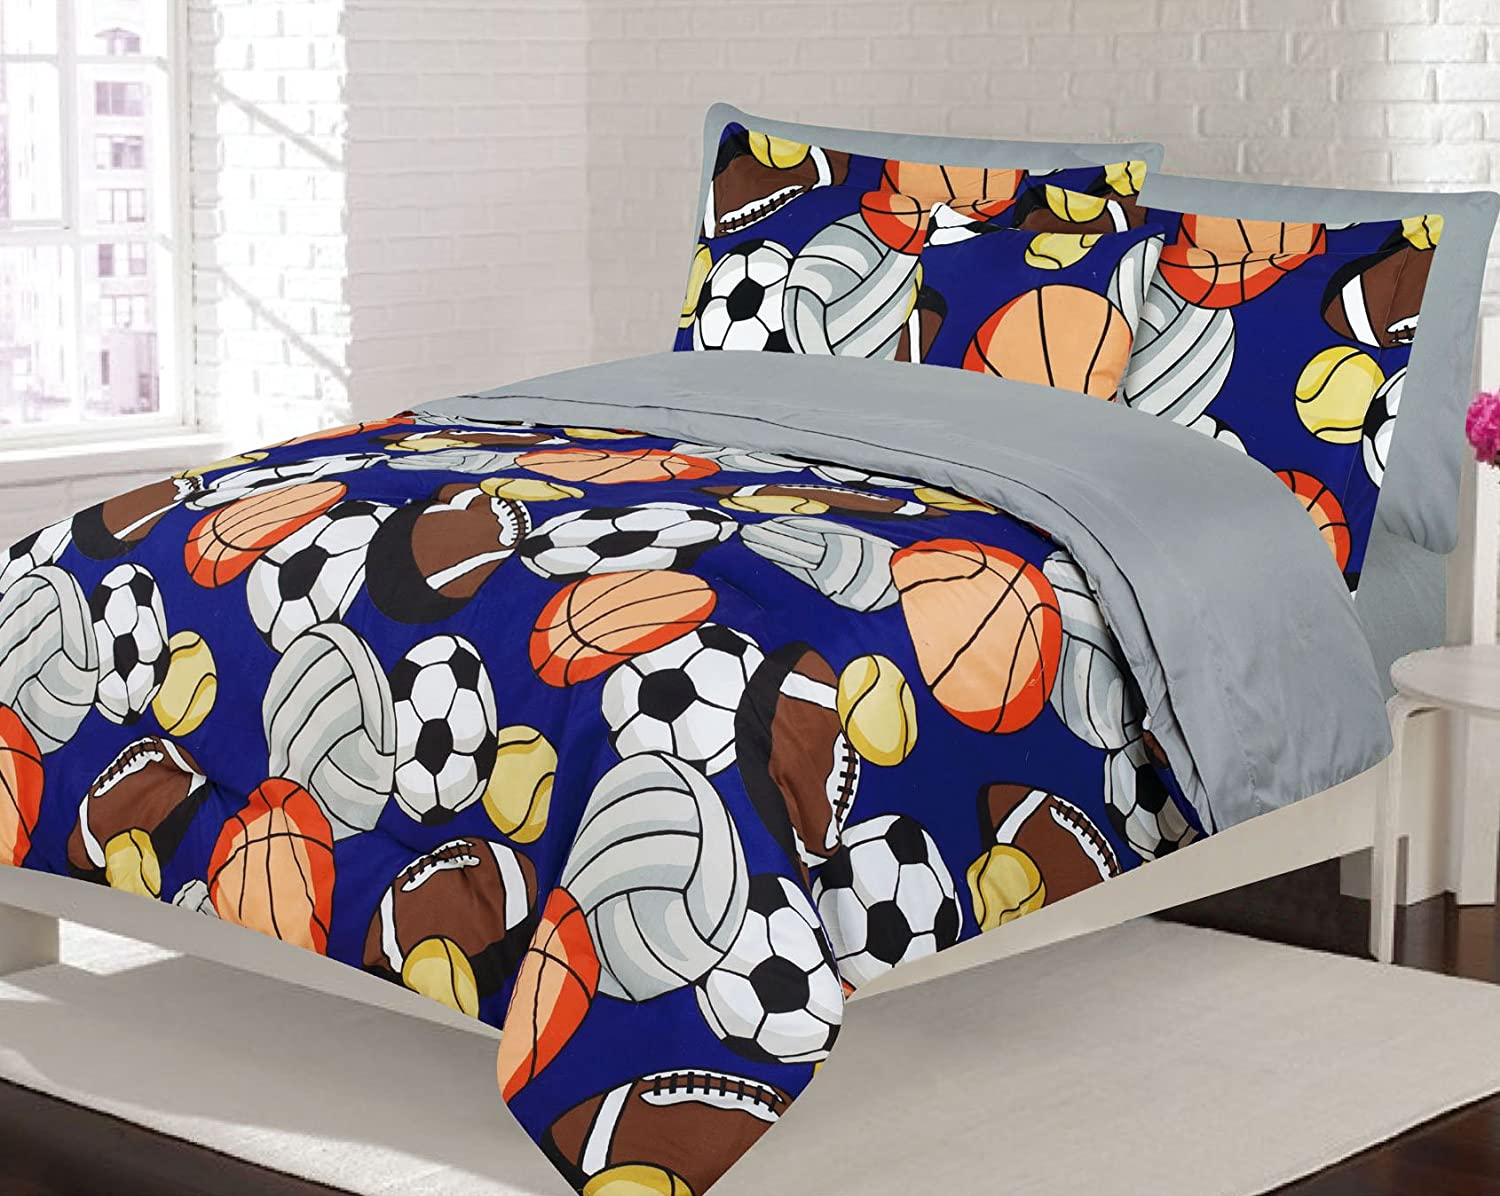 Boys Bedding Full 8 Piece Comforter and Sheet Set, Sports Football Basketball Soccer Tennis